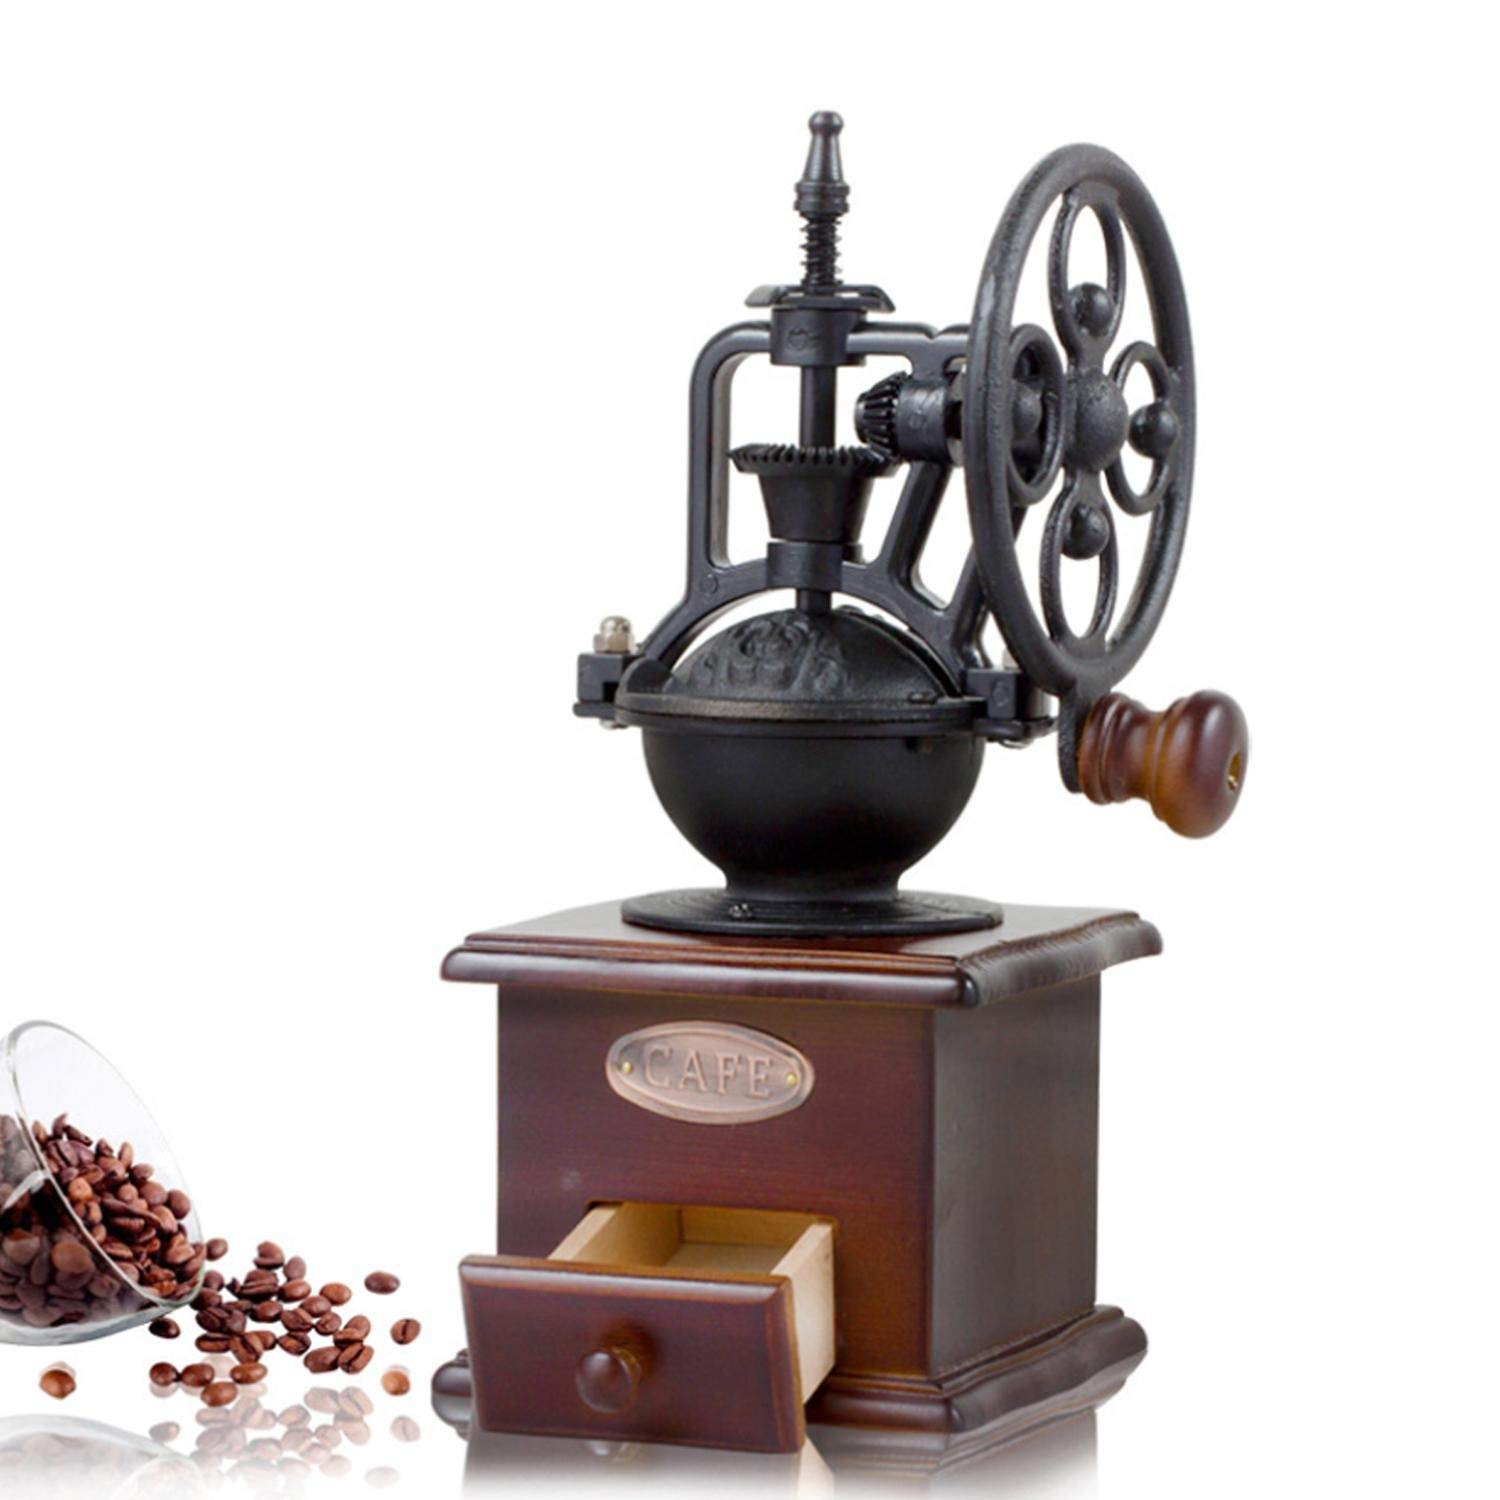 Aolvo Manual Coffee Grinder With Grind Settings and Catch Drawer, Classic Vintage Style Hand Coffee Bean Mill Burr Grinding Machine, Hand-crank Roller Drive Grain Spice Grinder Coffee Maker